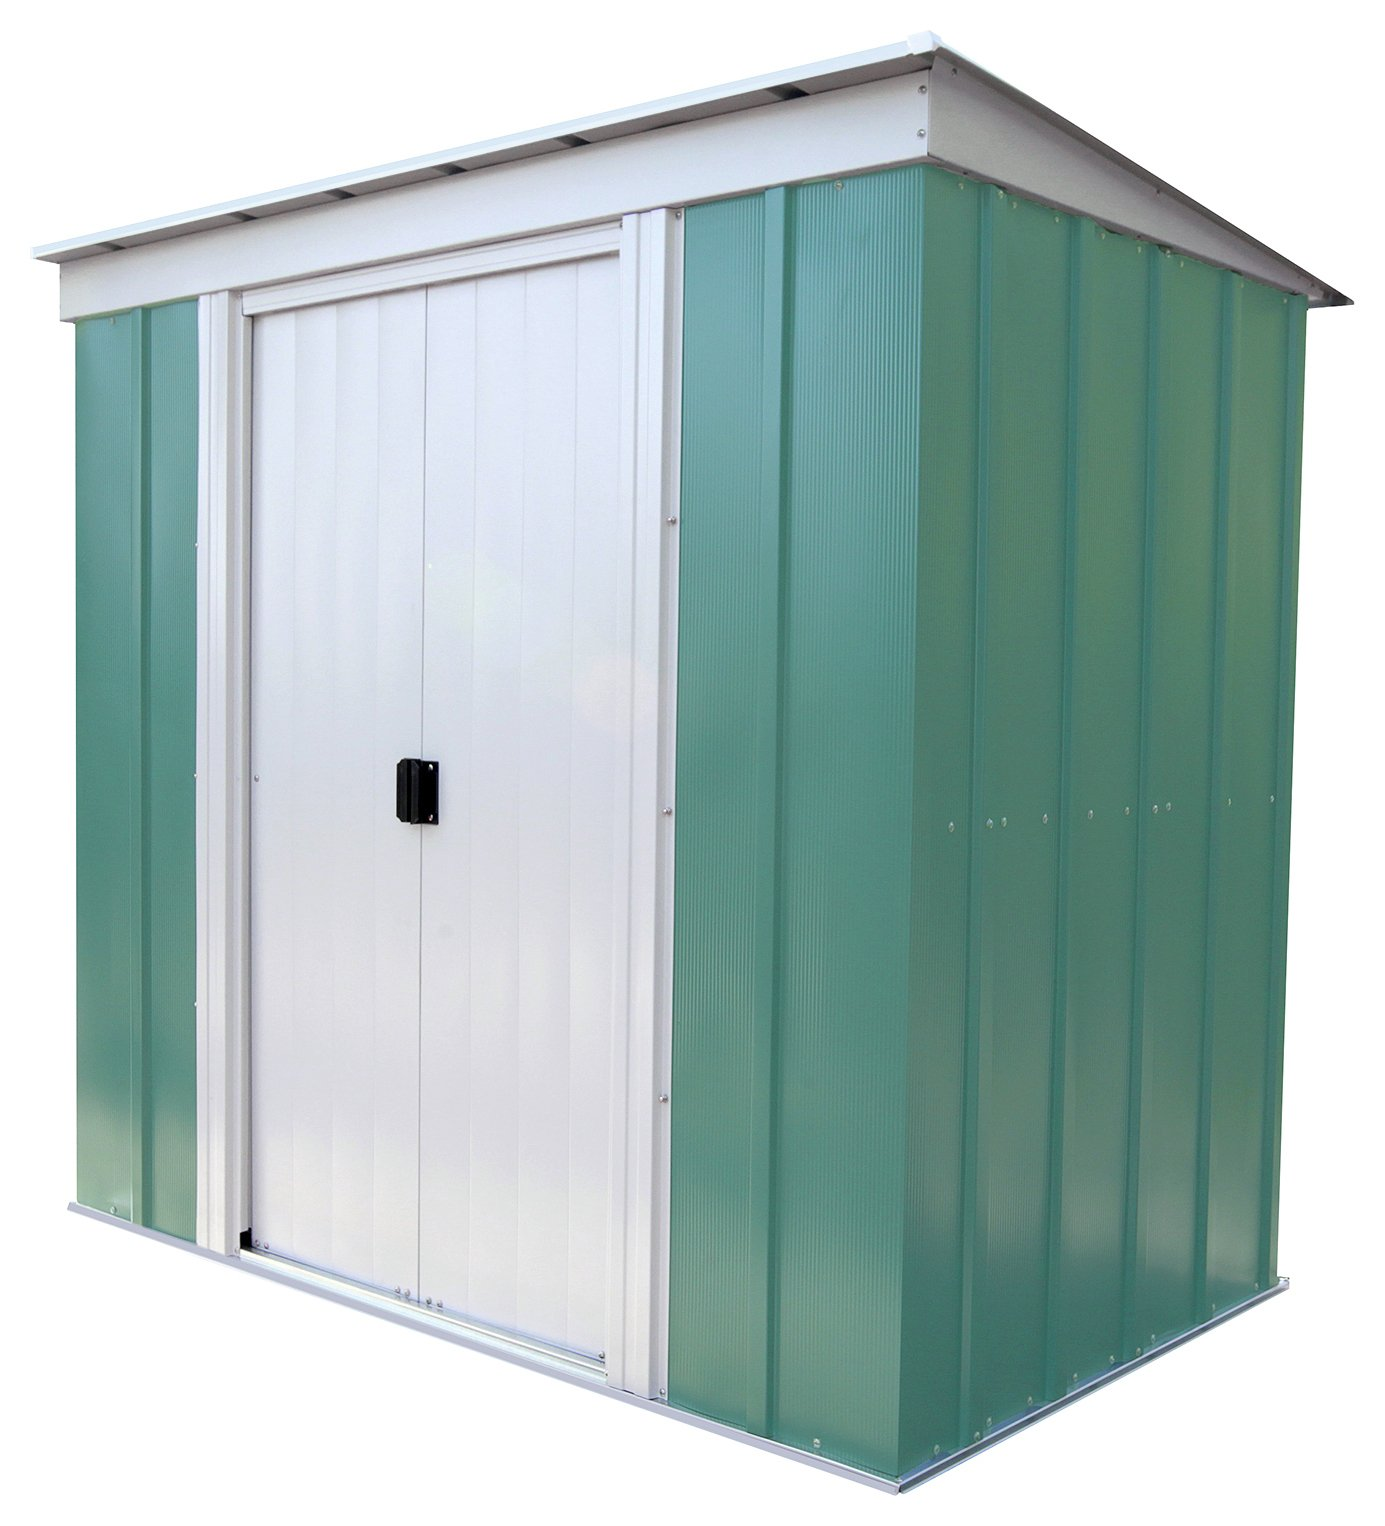 Arrow - Pent Metal Garden Shed - 6 x 4ft at Argos from Arrow